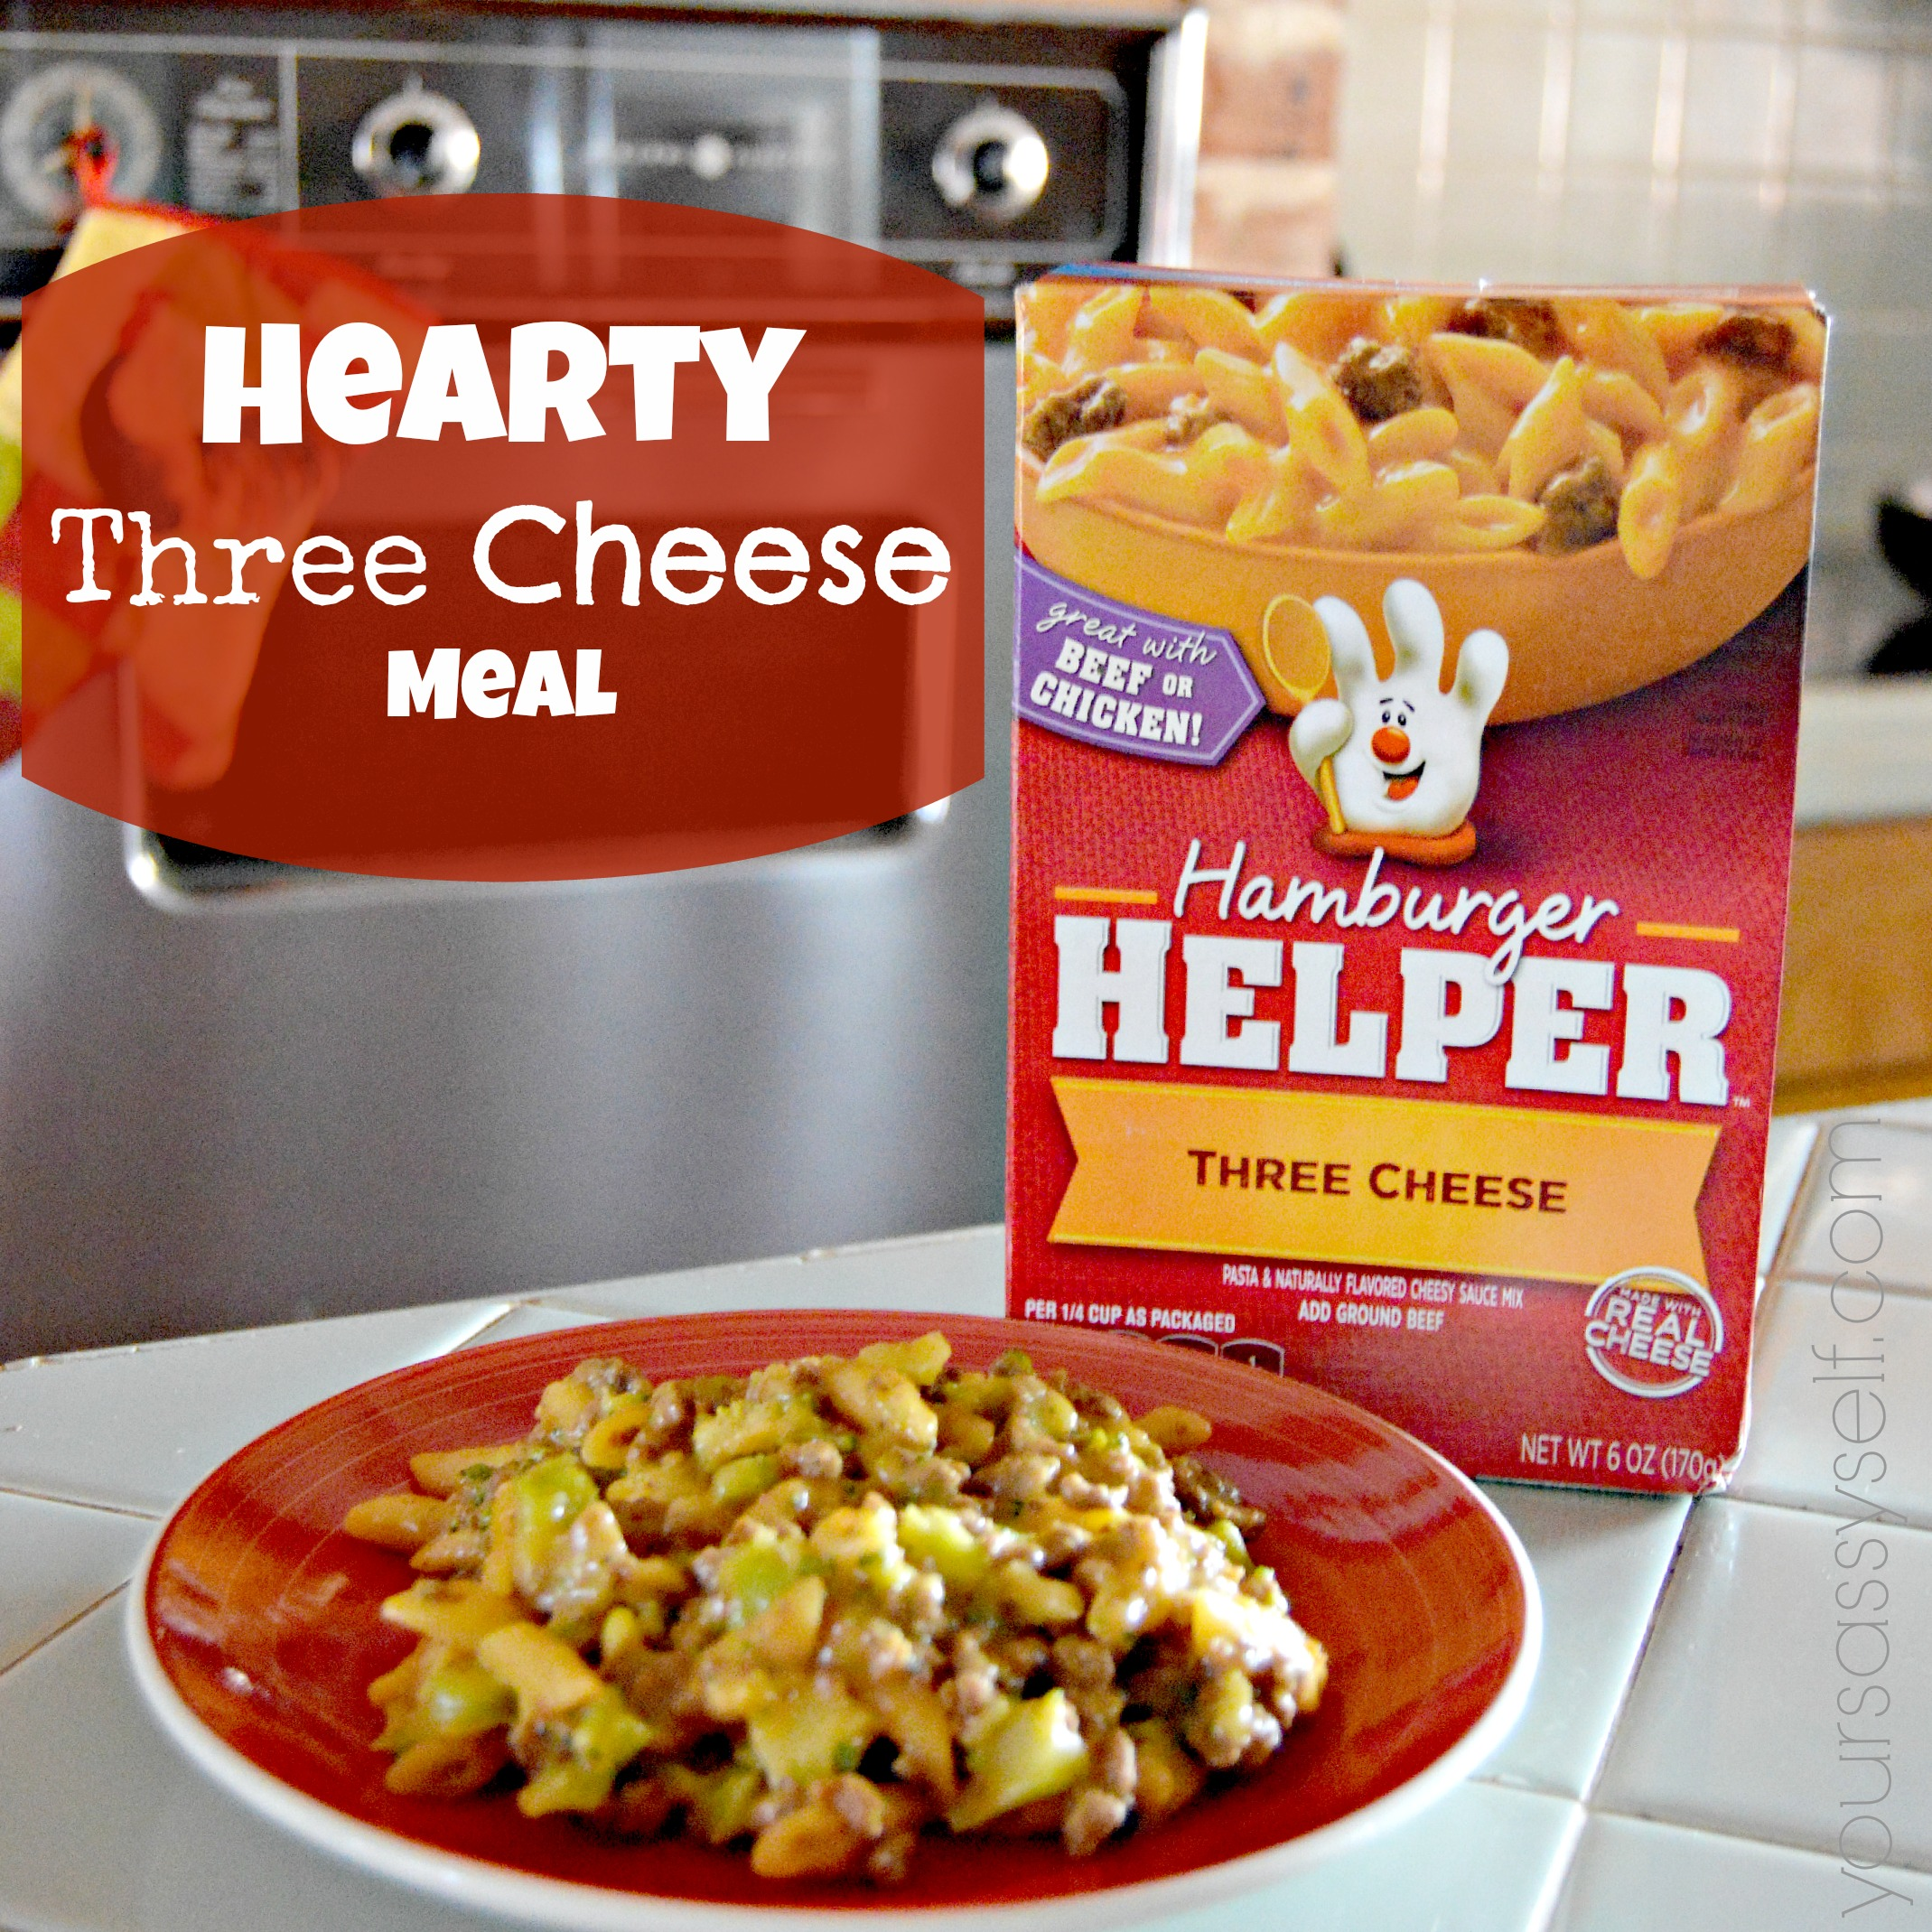 Hearty Three Cheese Meal